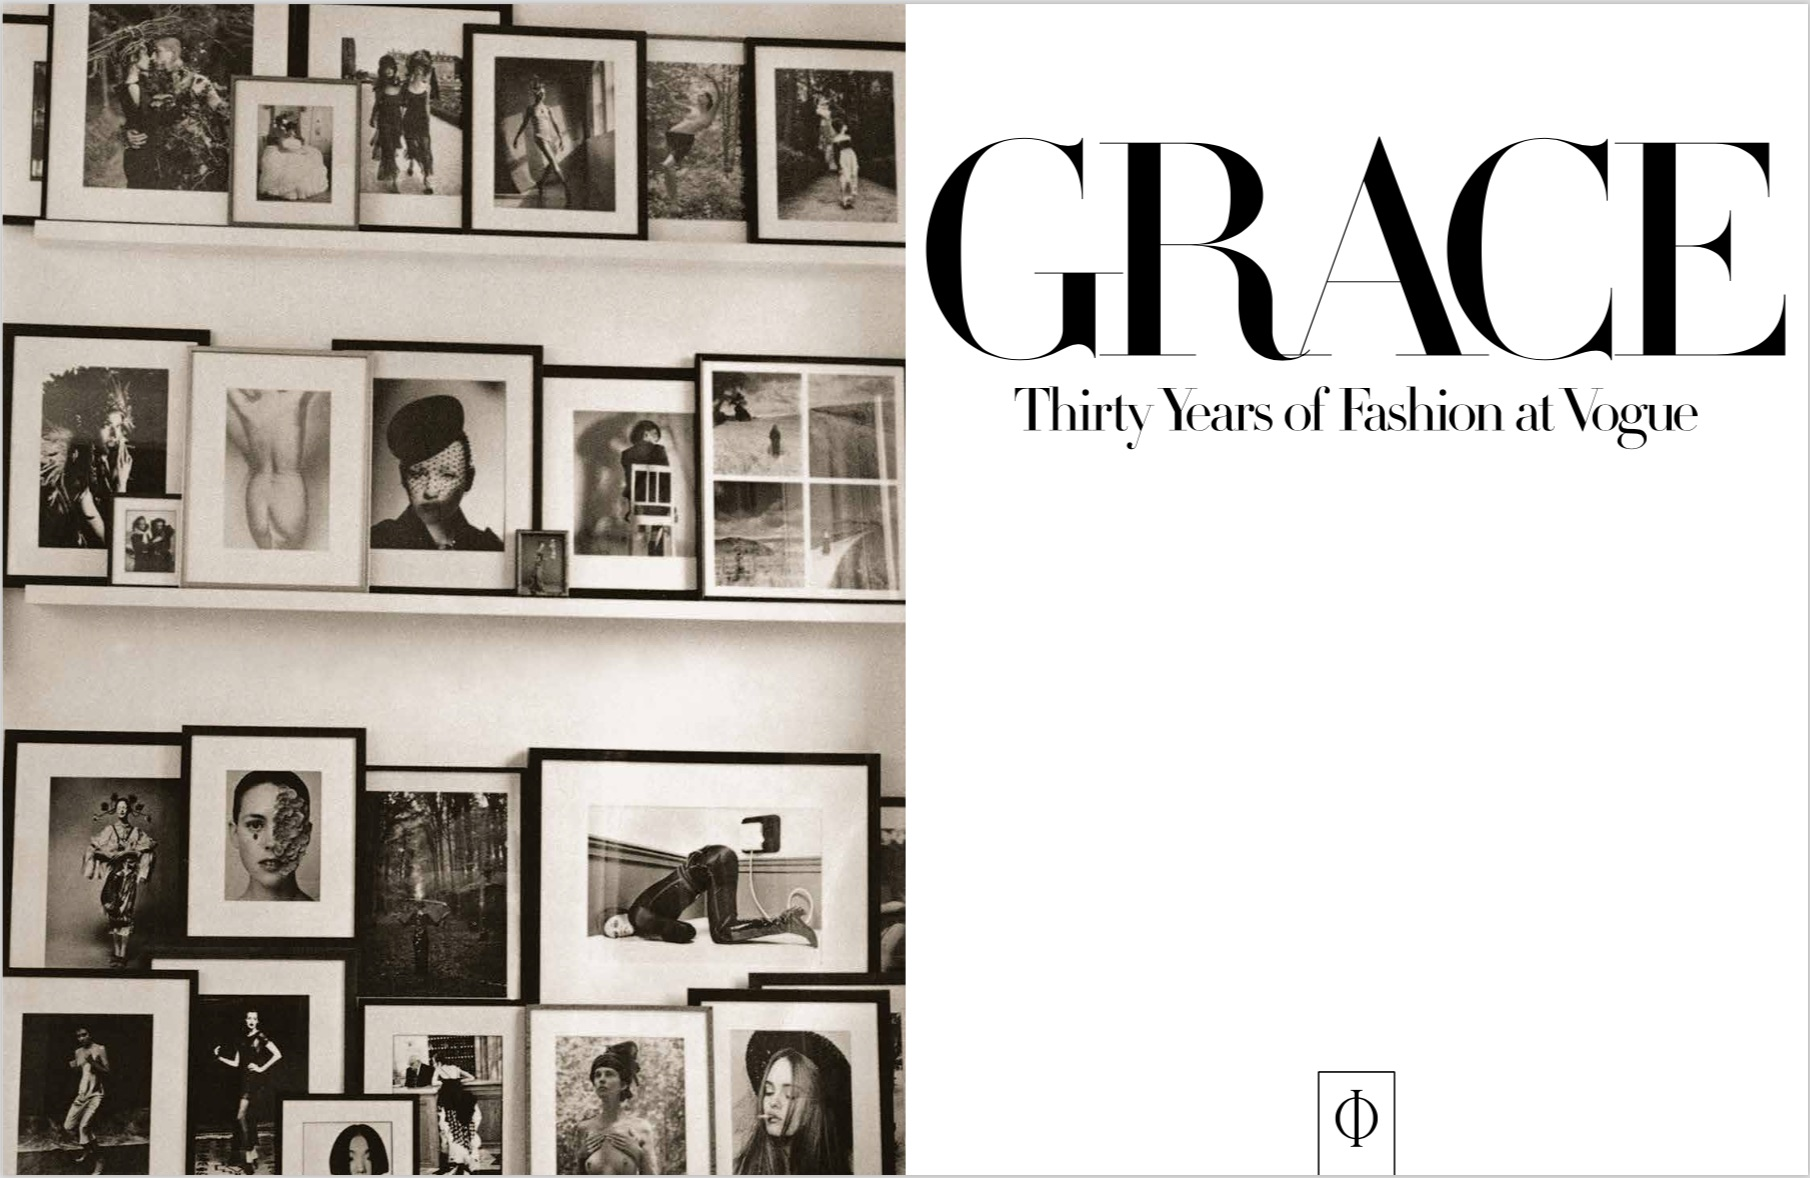 By Grace Coddington from Grace: Thirty Years of Fashion at Vogue copyright Phaidon 2018